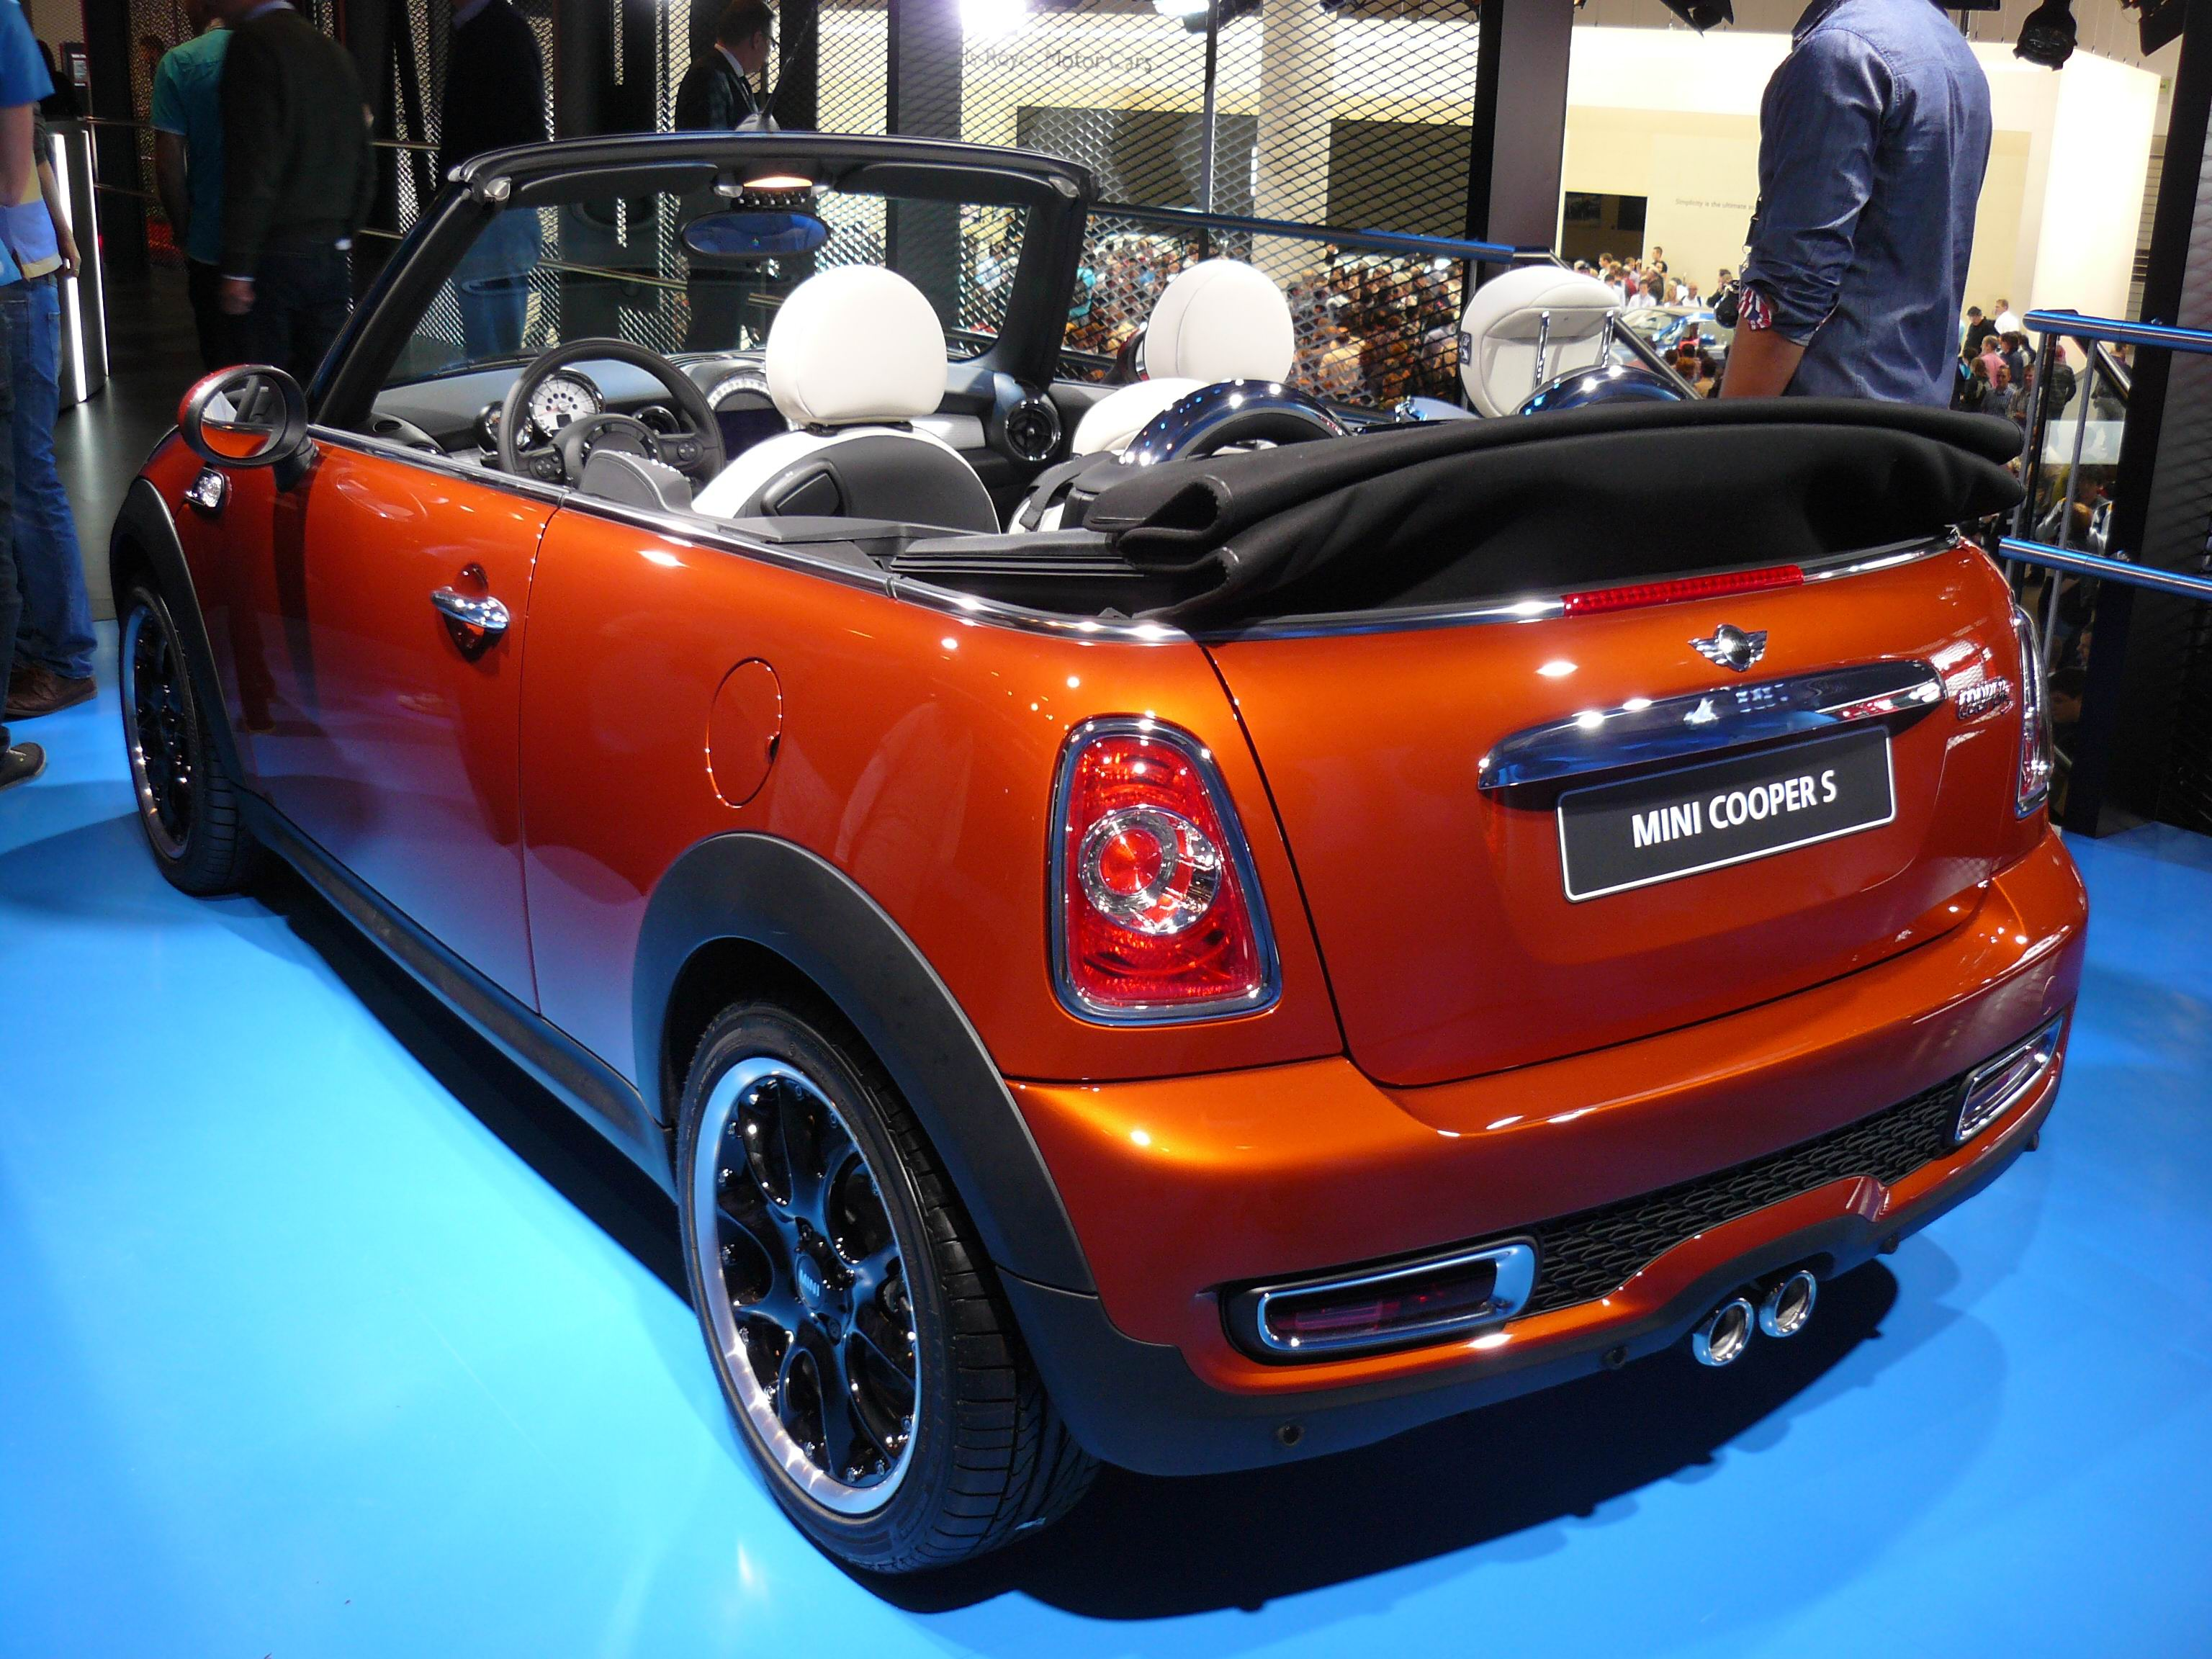 file mini cooper s cabrio jpg wikimedia commons. Black Bedroom Furniture Sets. Home Design Ideas